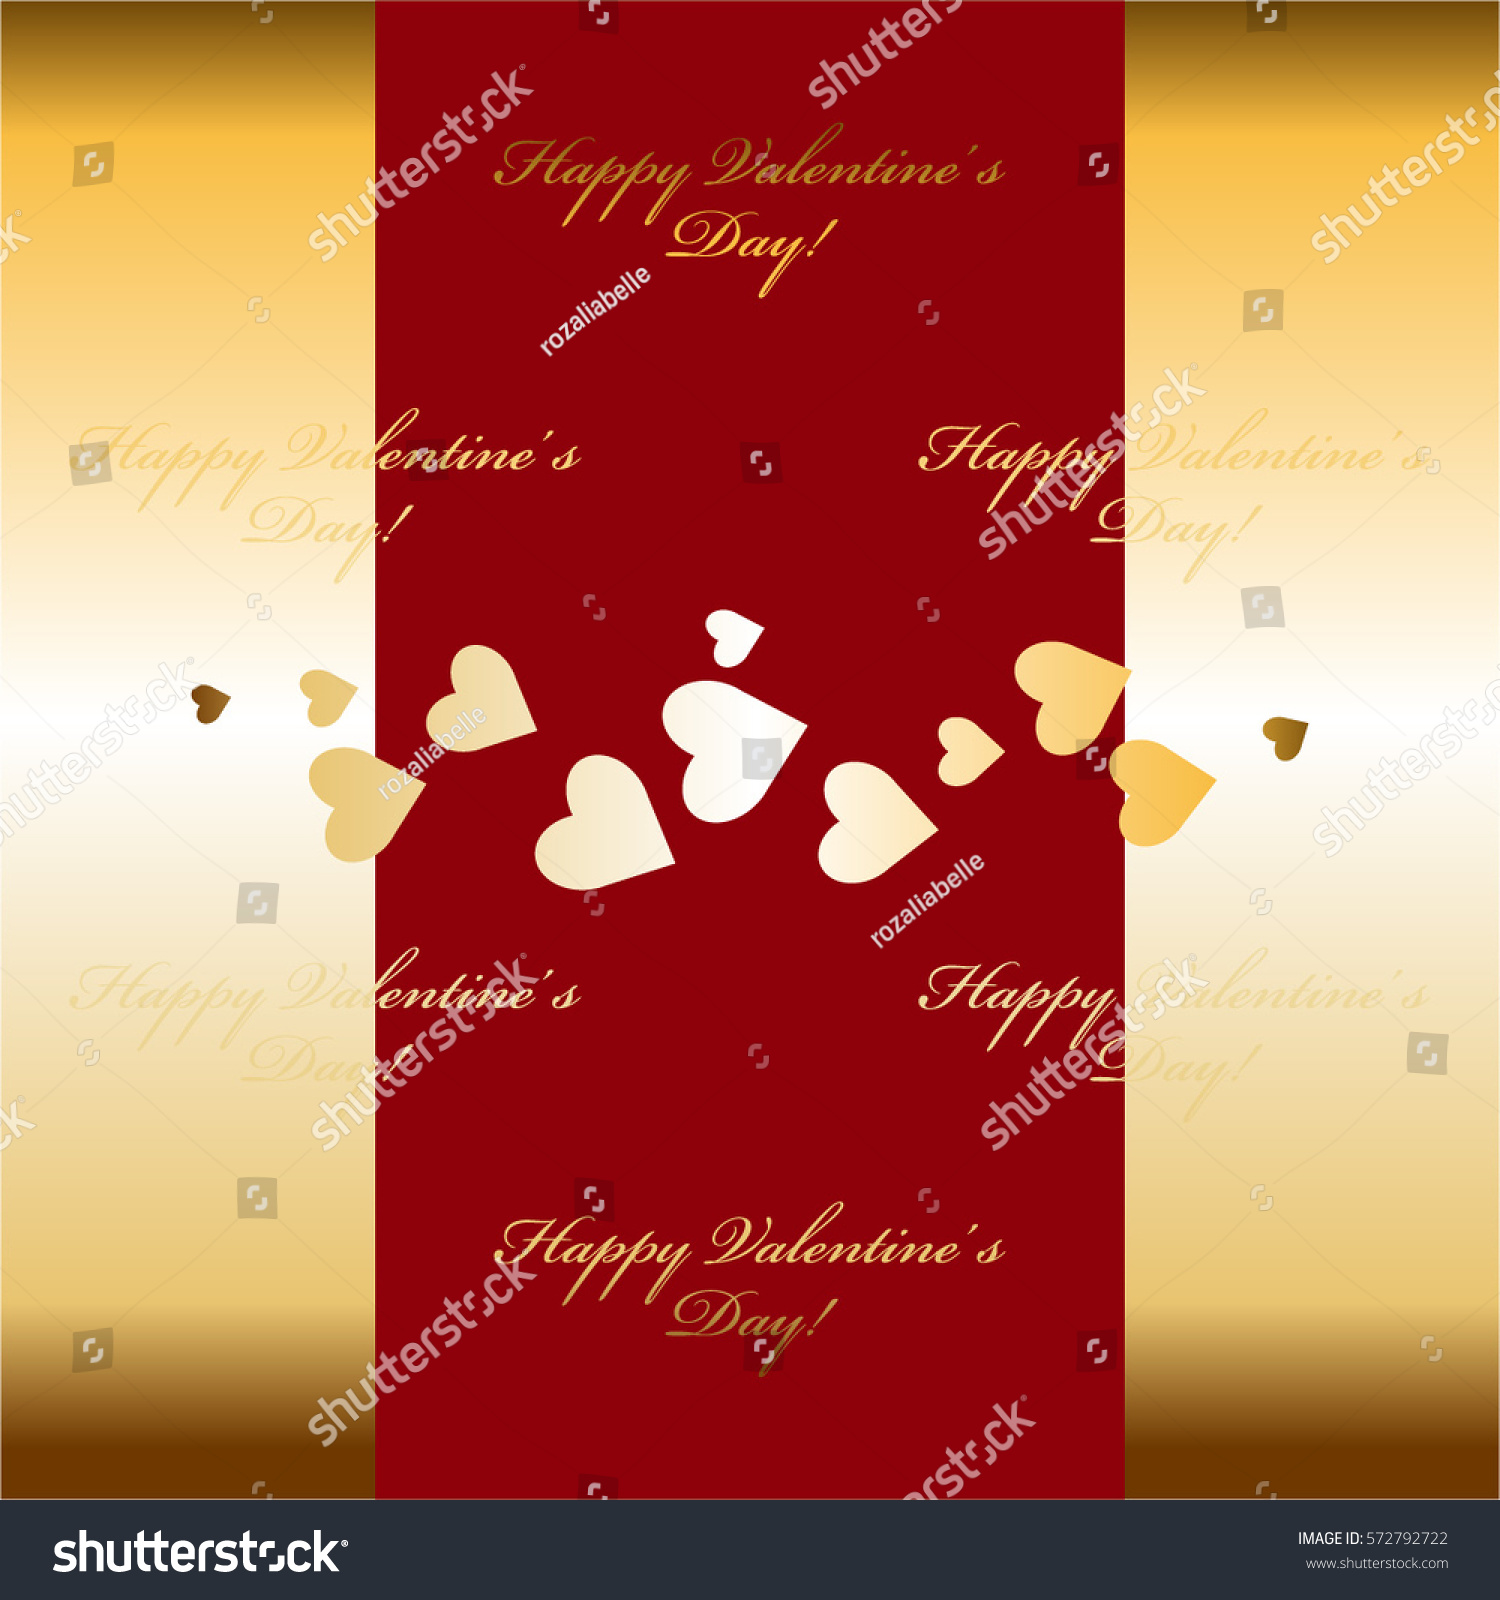 Golden Hearts Red Gold Background Stock Vector